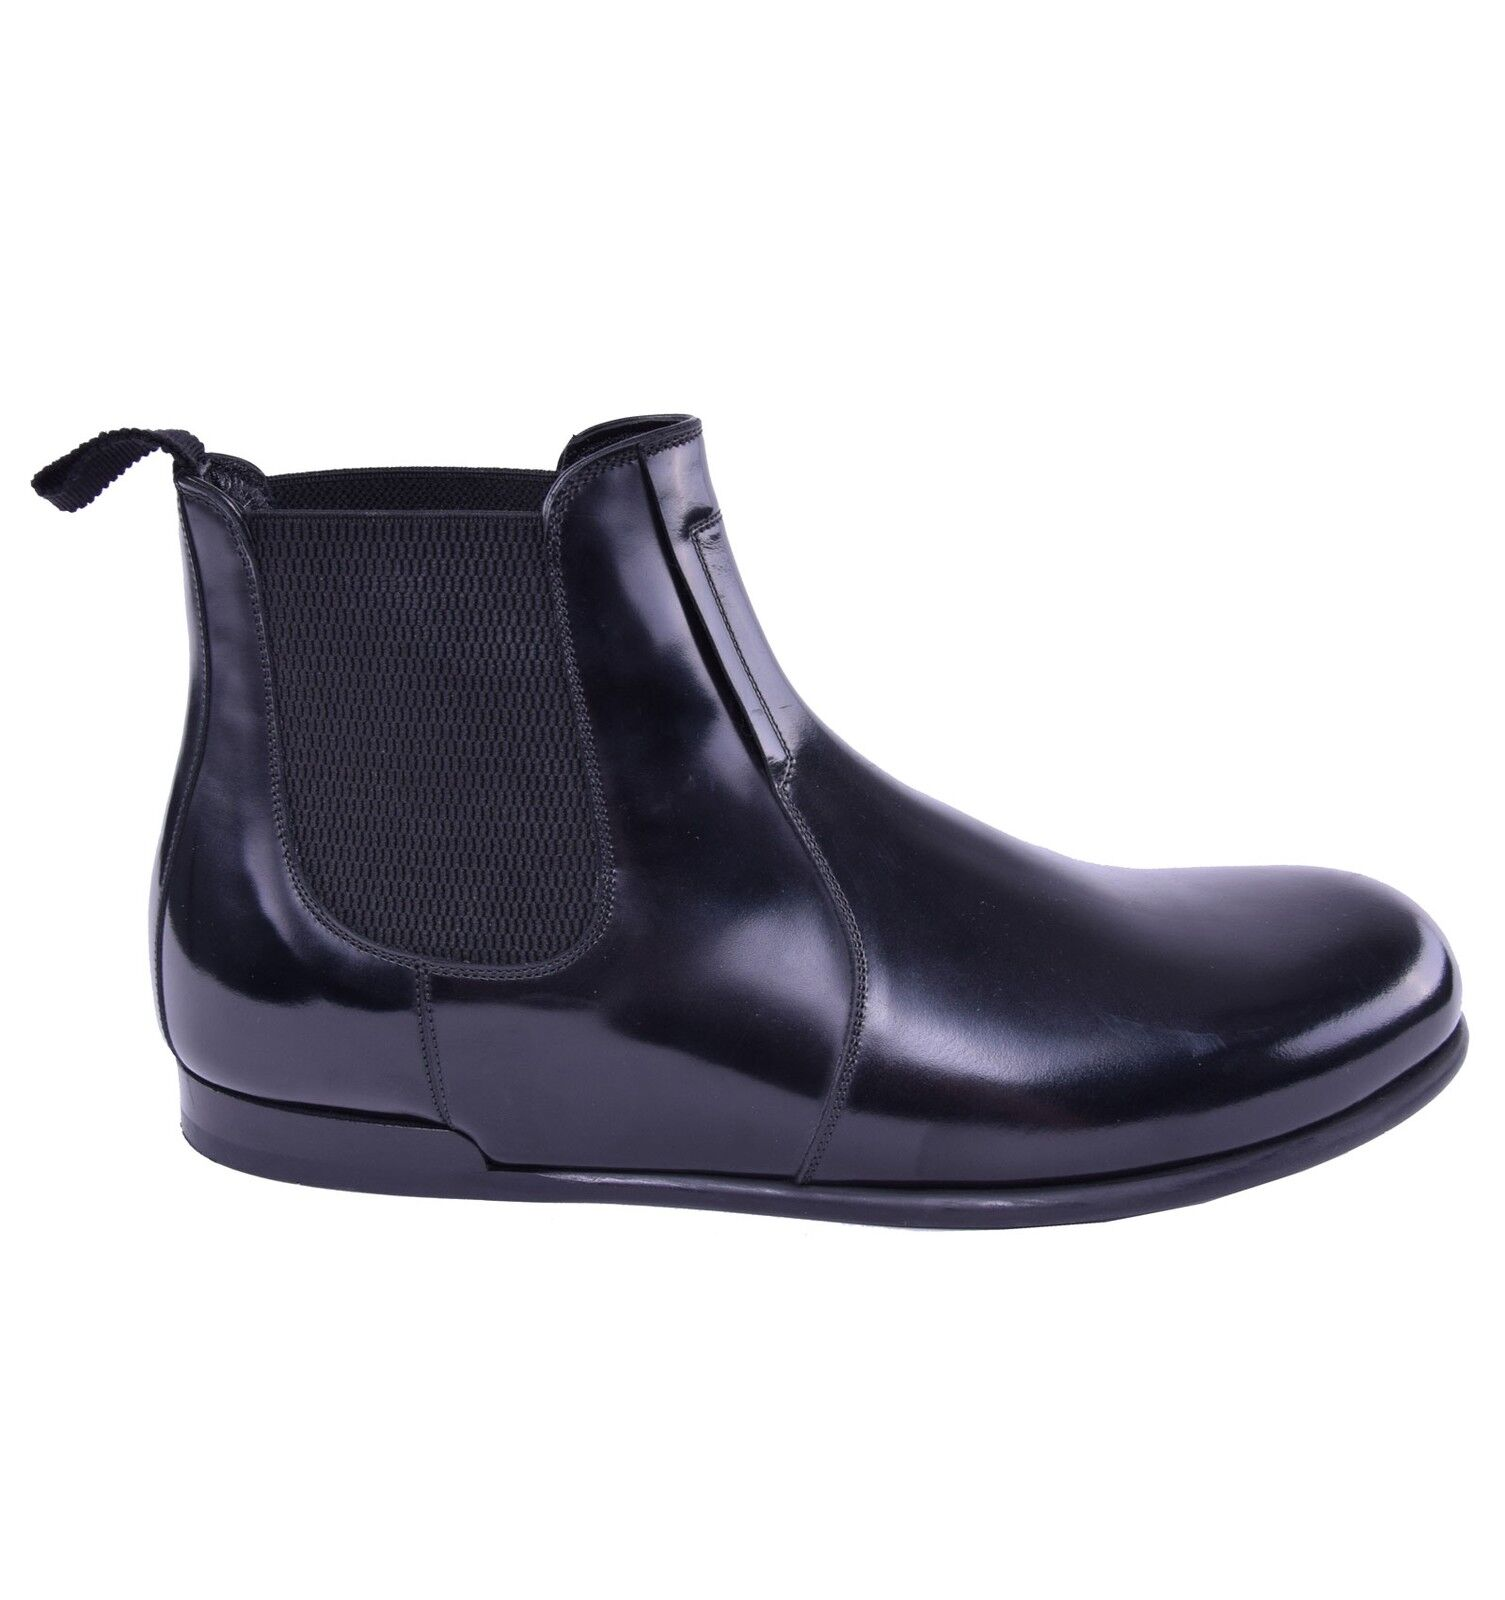 DOLCE & GABBANA RUNWAY Business Shiny Leather Boots Shoes Black 03822